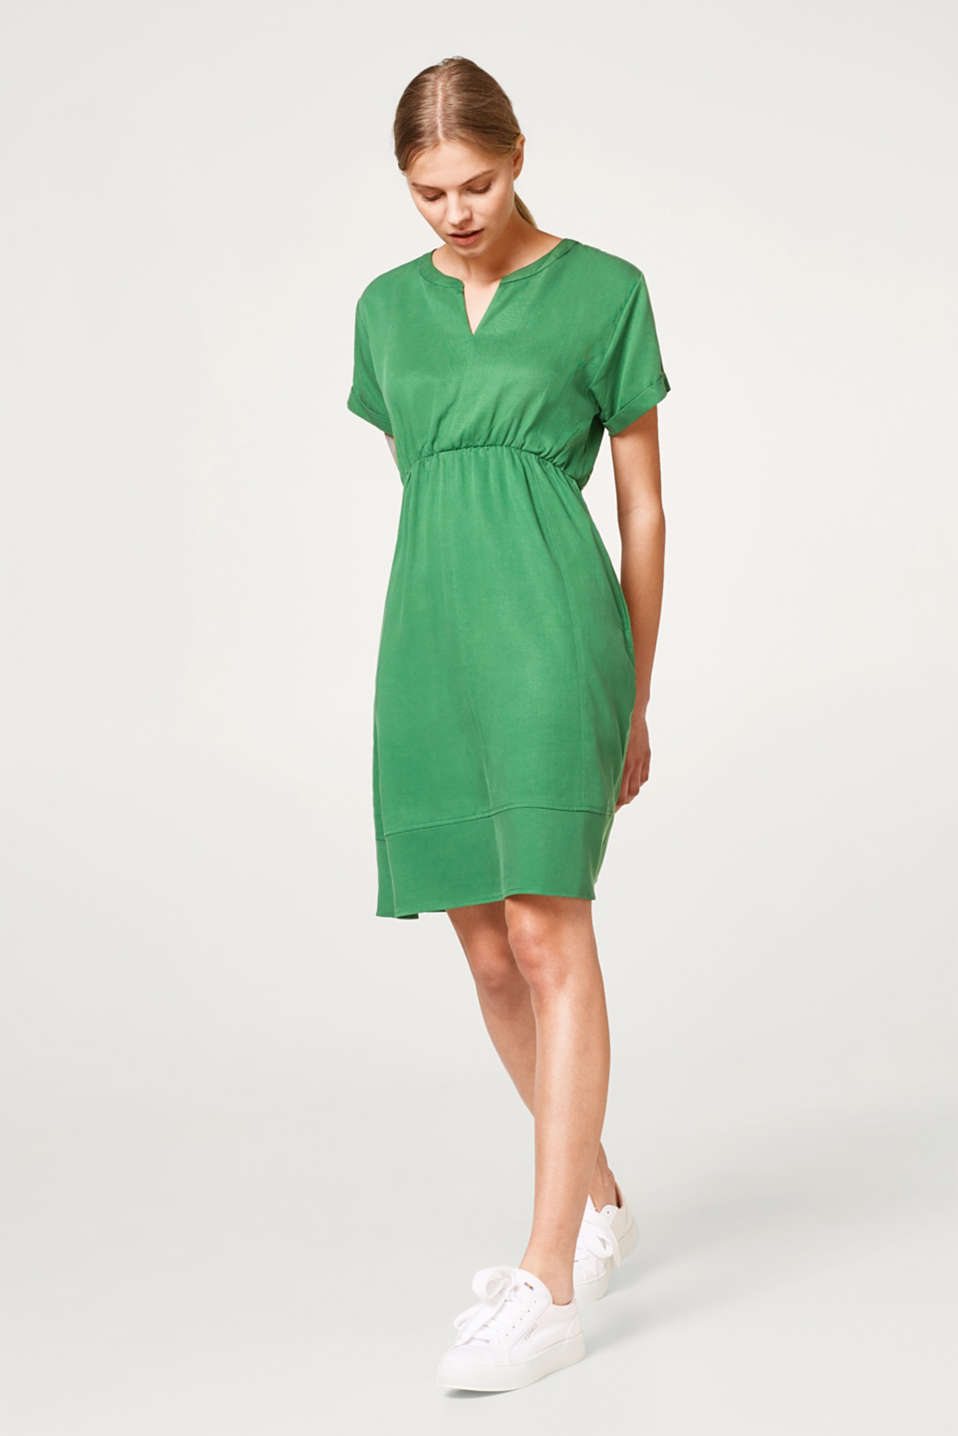 Textured dress with a tulip neckline